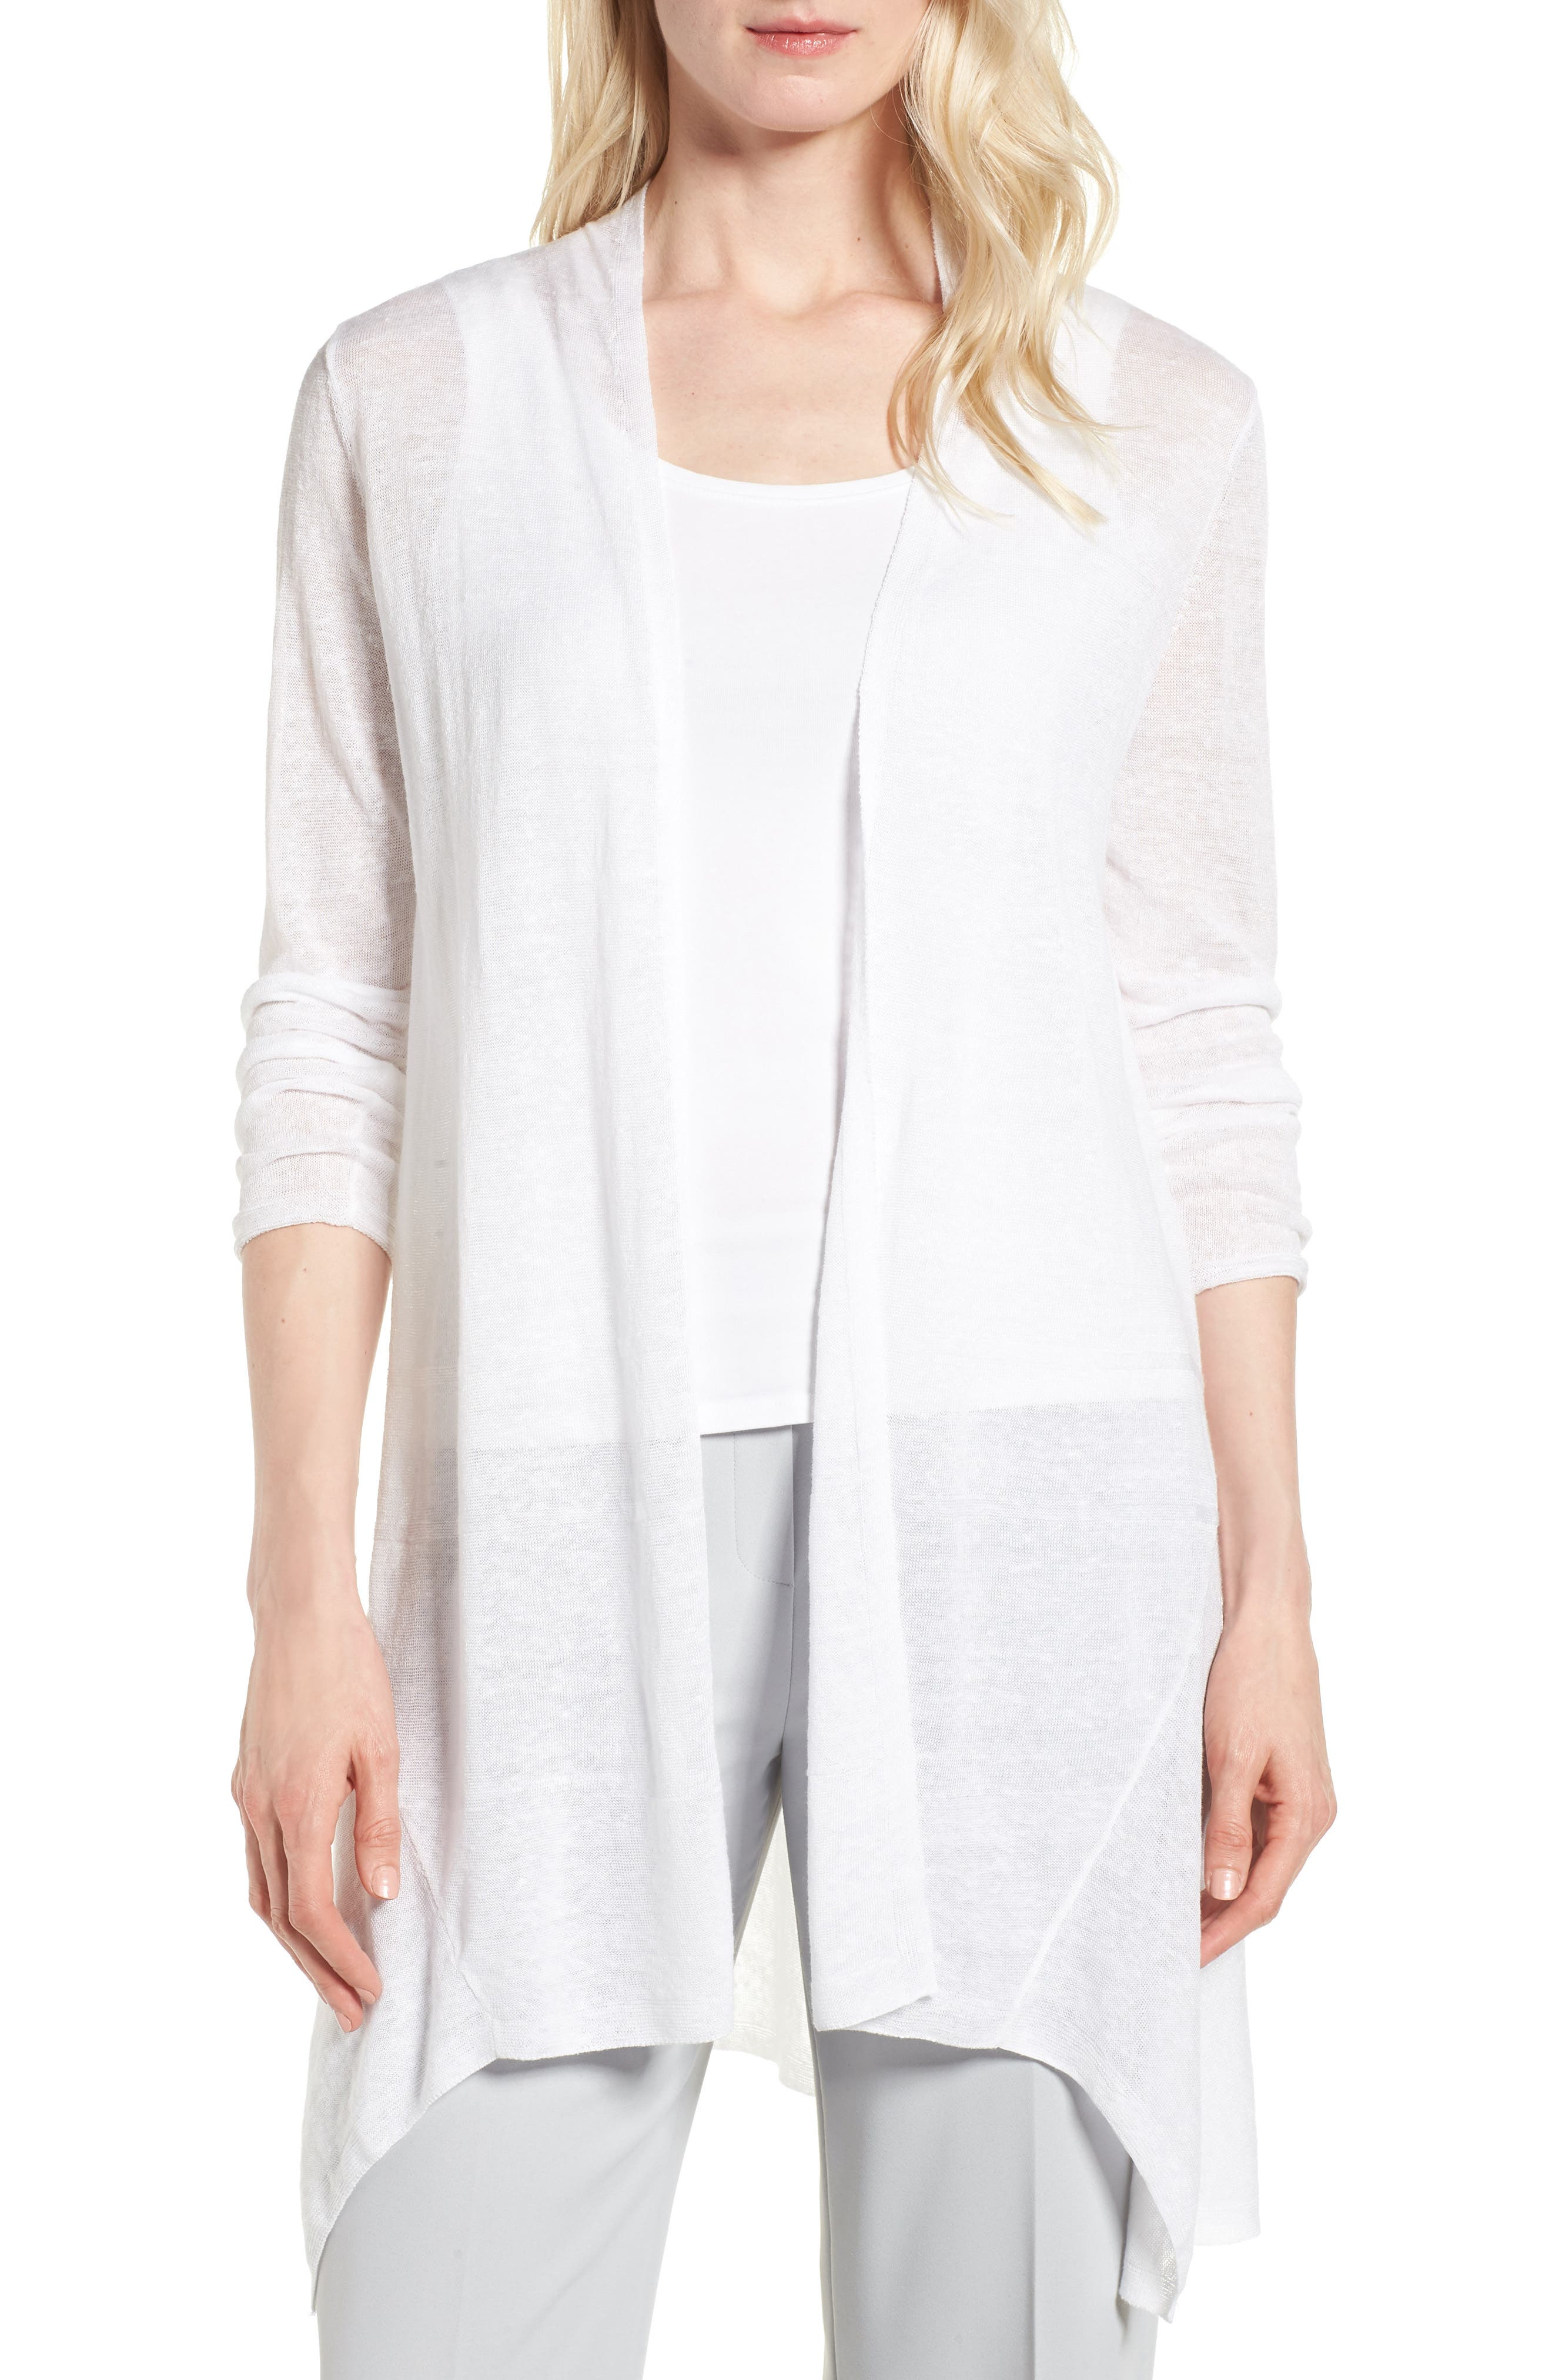 Here or There Long Cardigan,                             Main thumbnail 1, color,                             Paper White